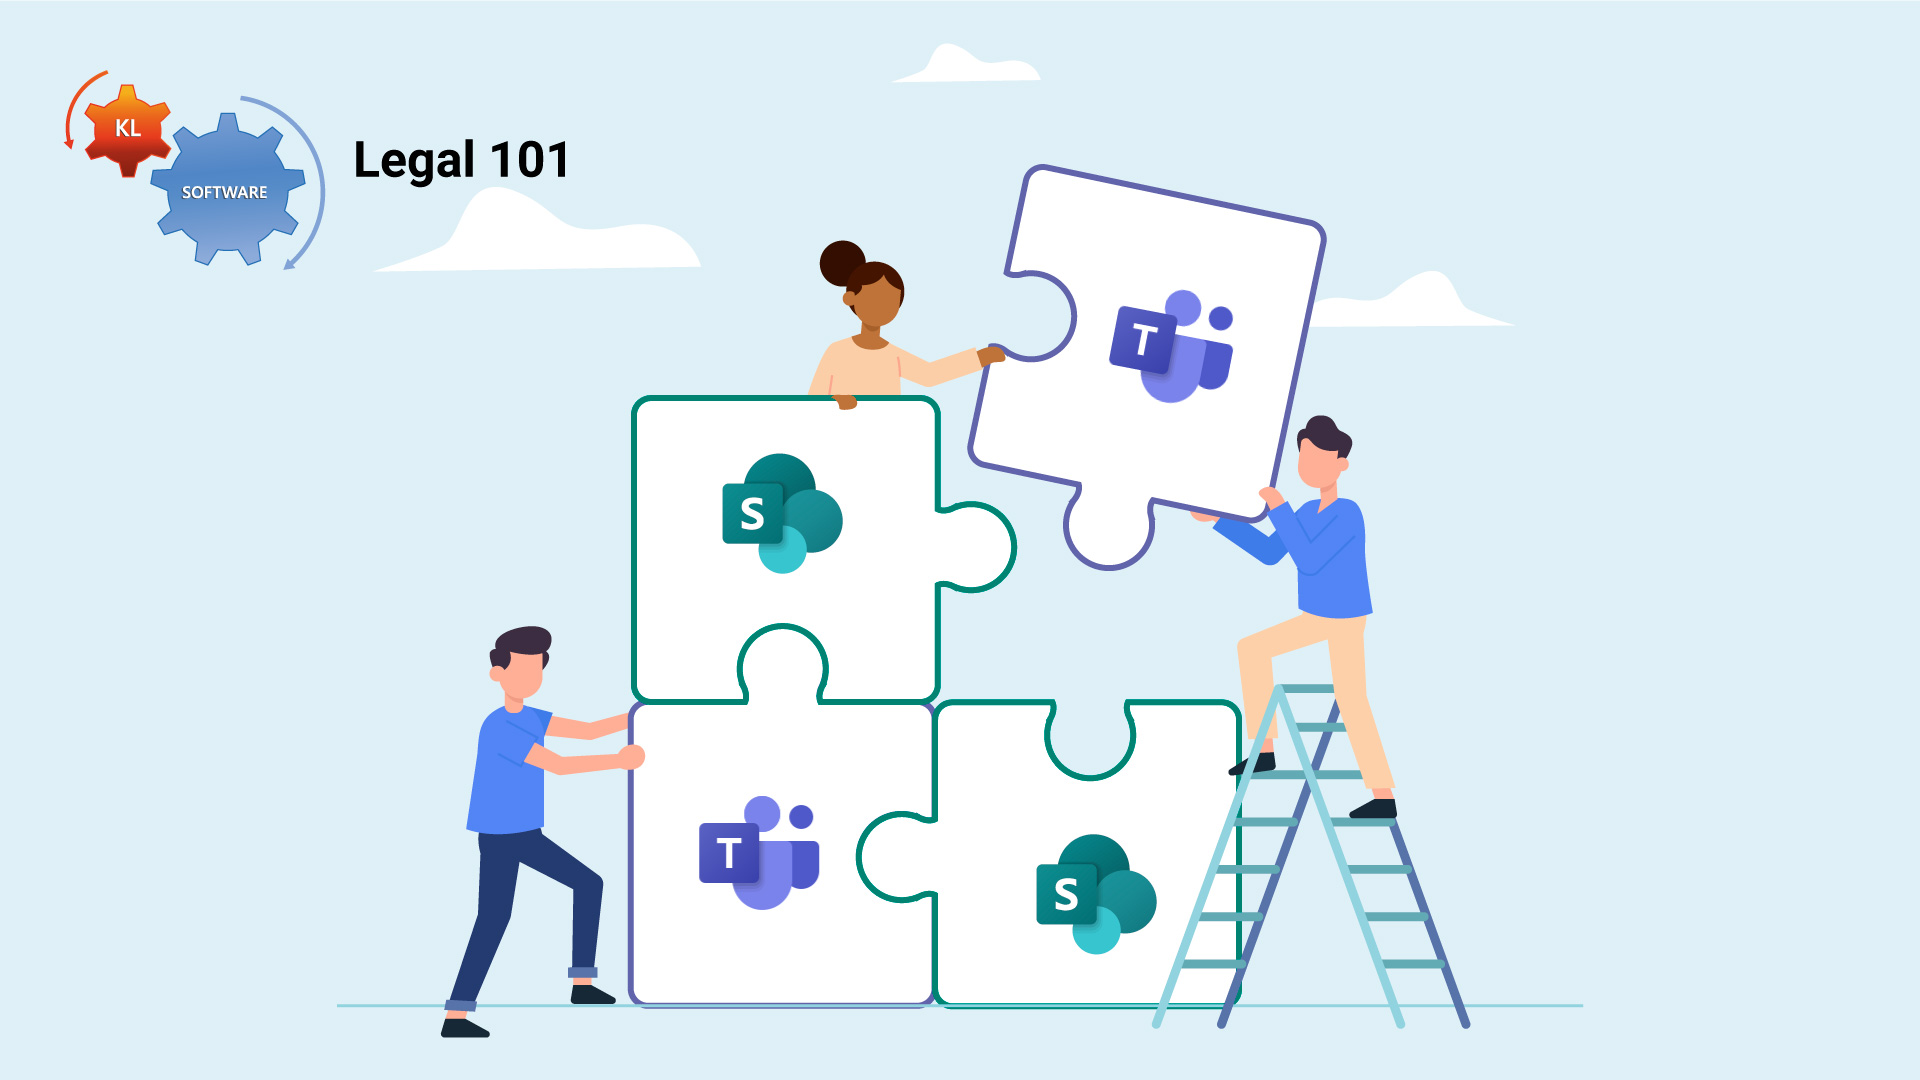 Connect-sharepoint-teams-legal101